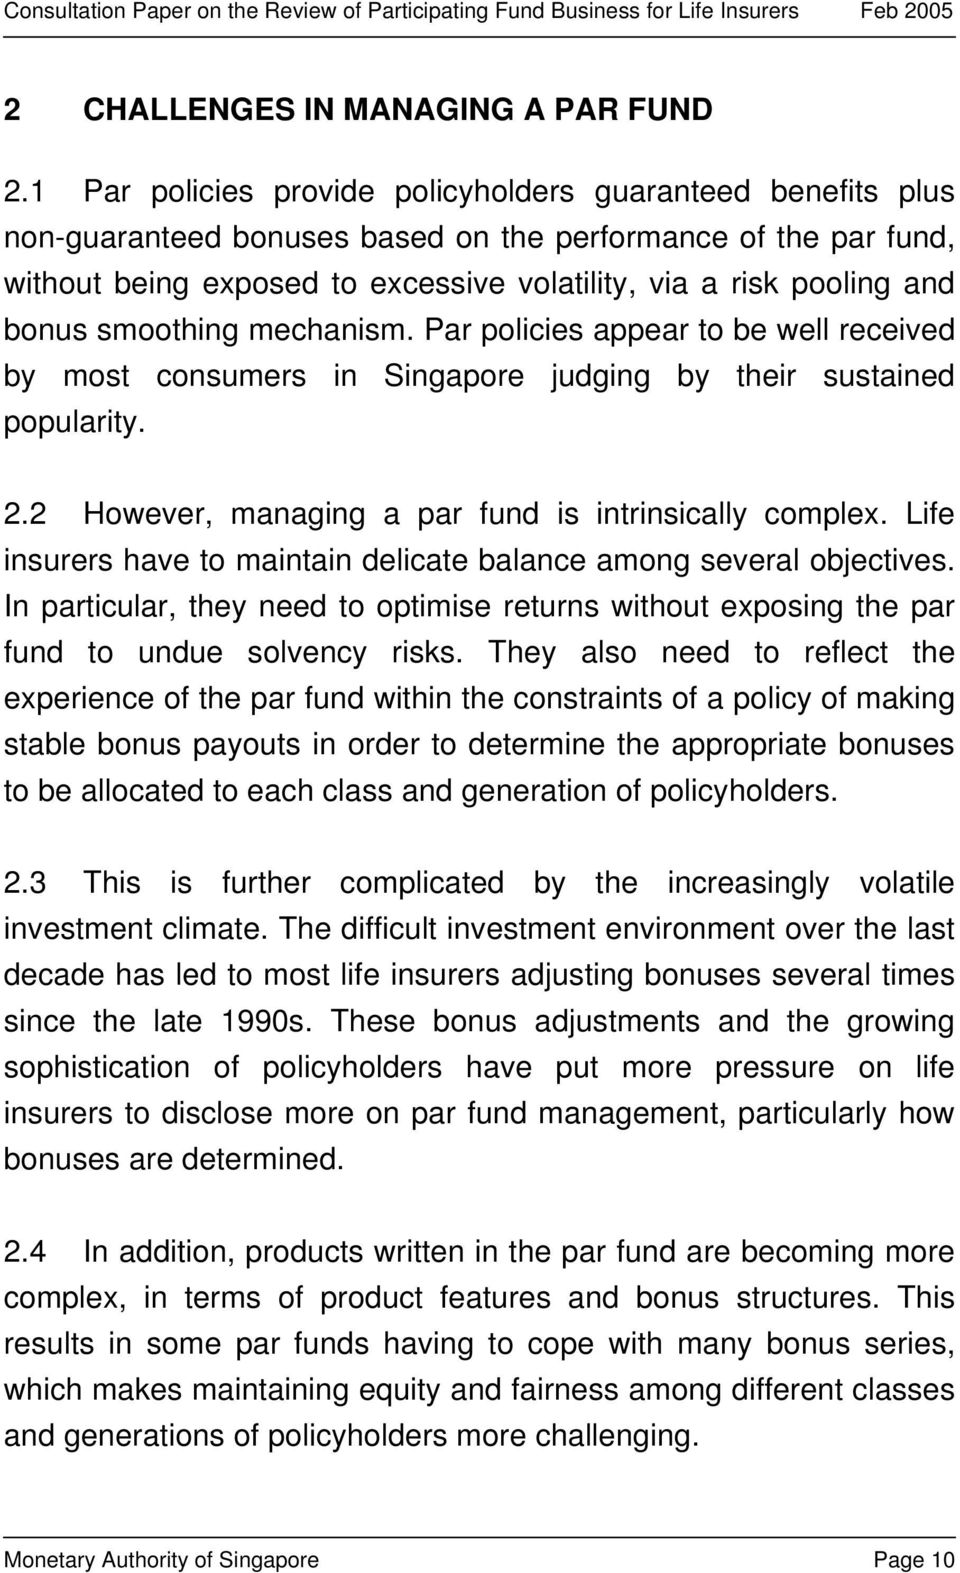 bonus smoothing mechanism. Par policies appear to be well received by most consumers in Singapore judging by their sustained popularity. 2.2 However, managing a par fund is intrinsically complex.